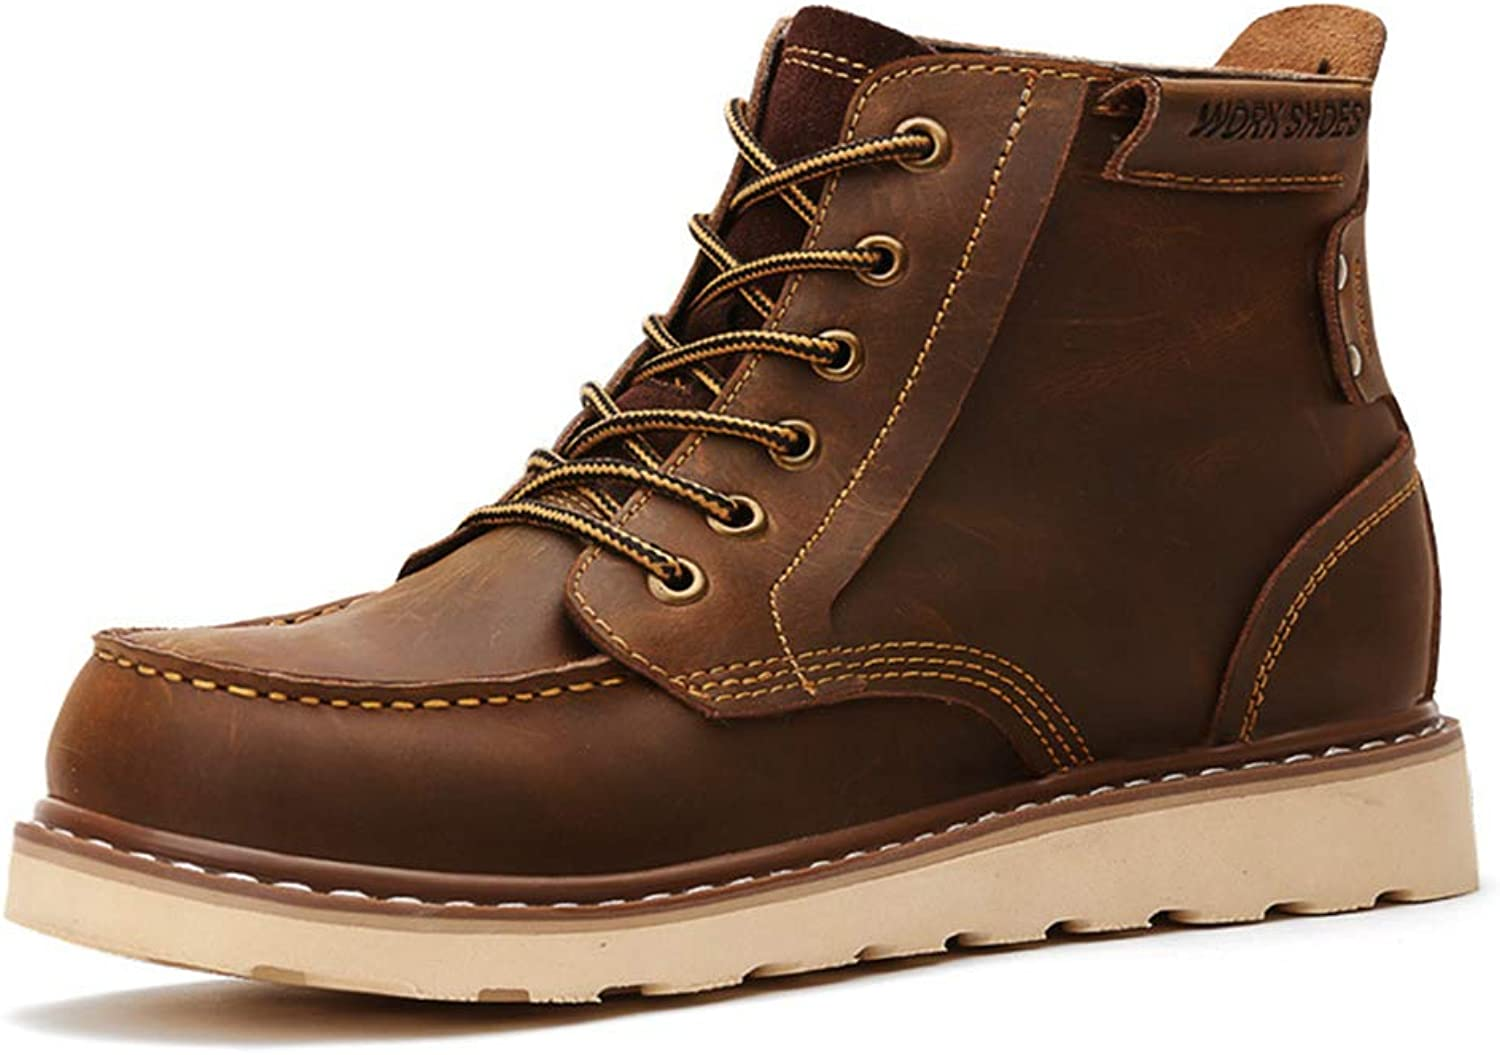 Men's New Boots Fall Winter Leather Martin Boots Non Slip Lace-Up Hiking shoes Tooling Boots,C,40